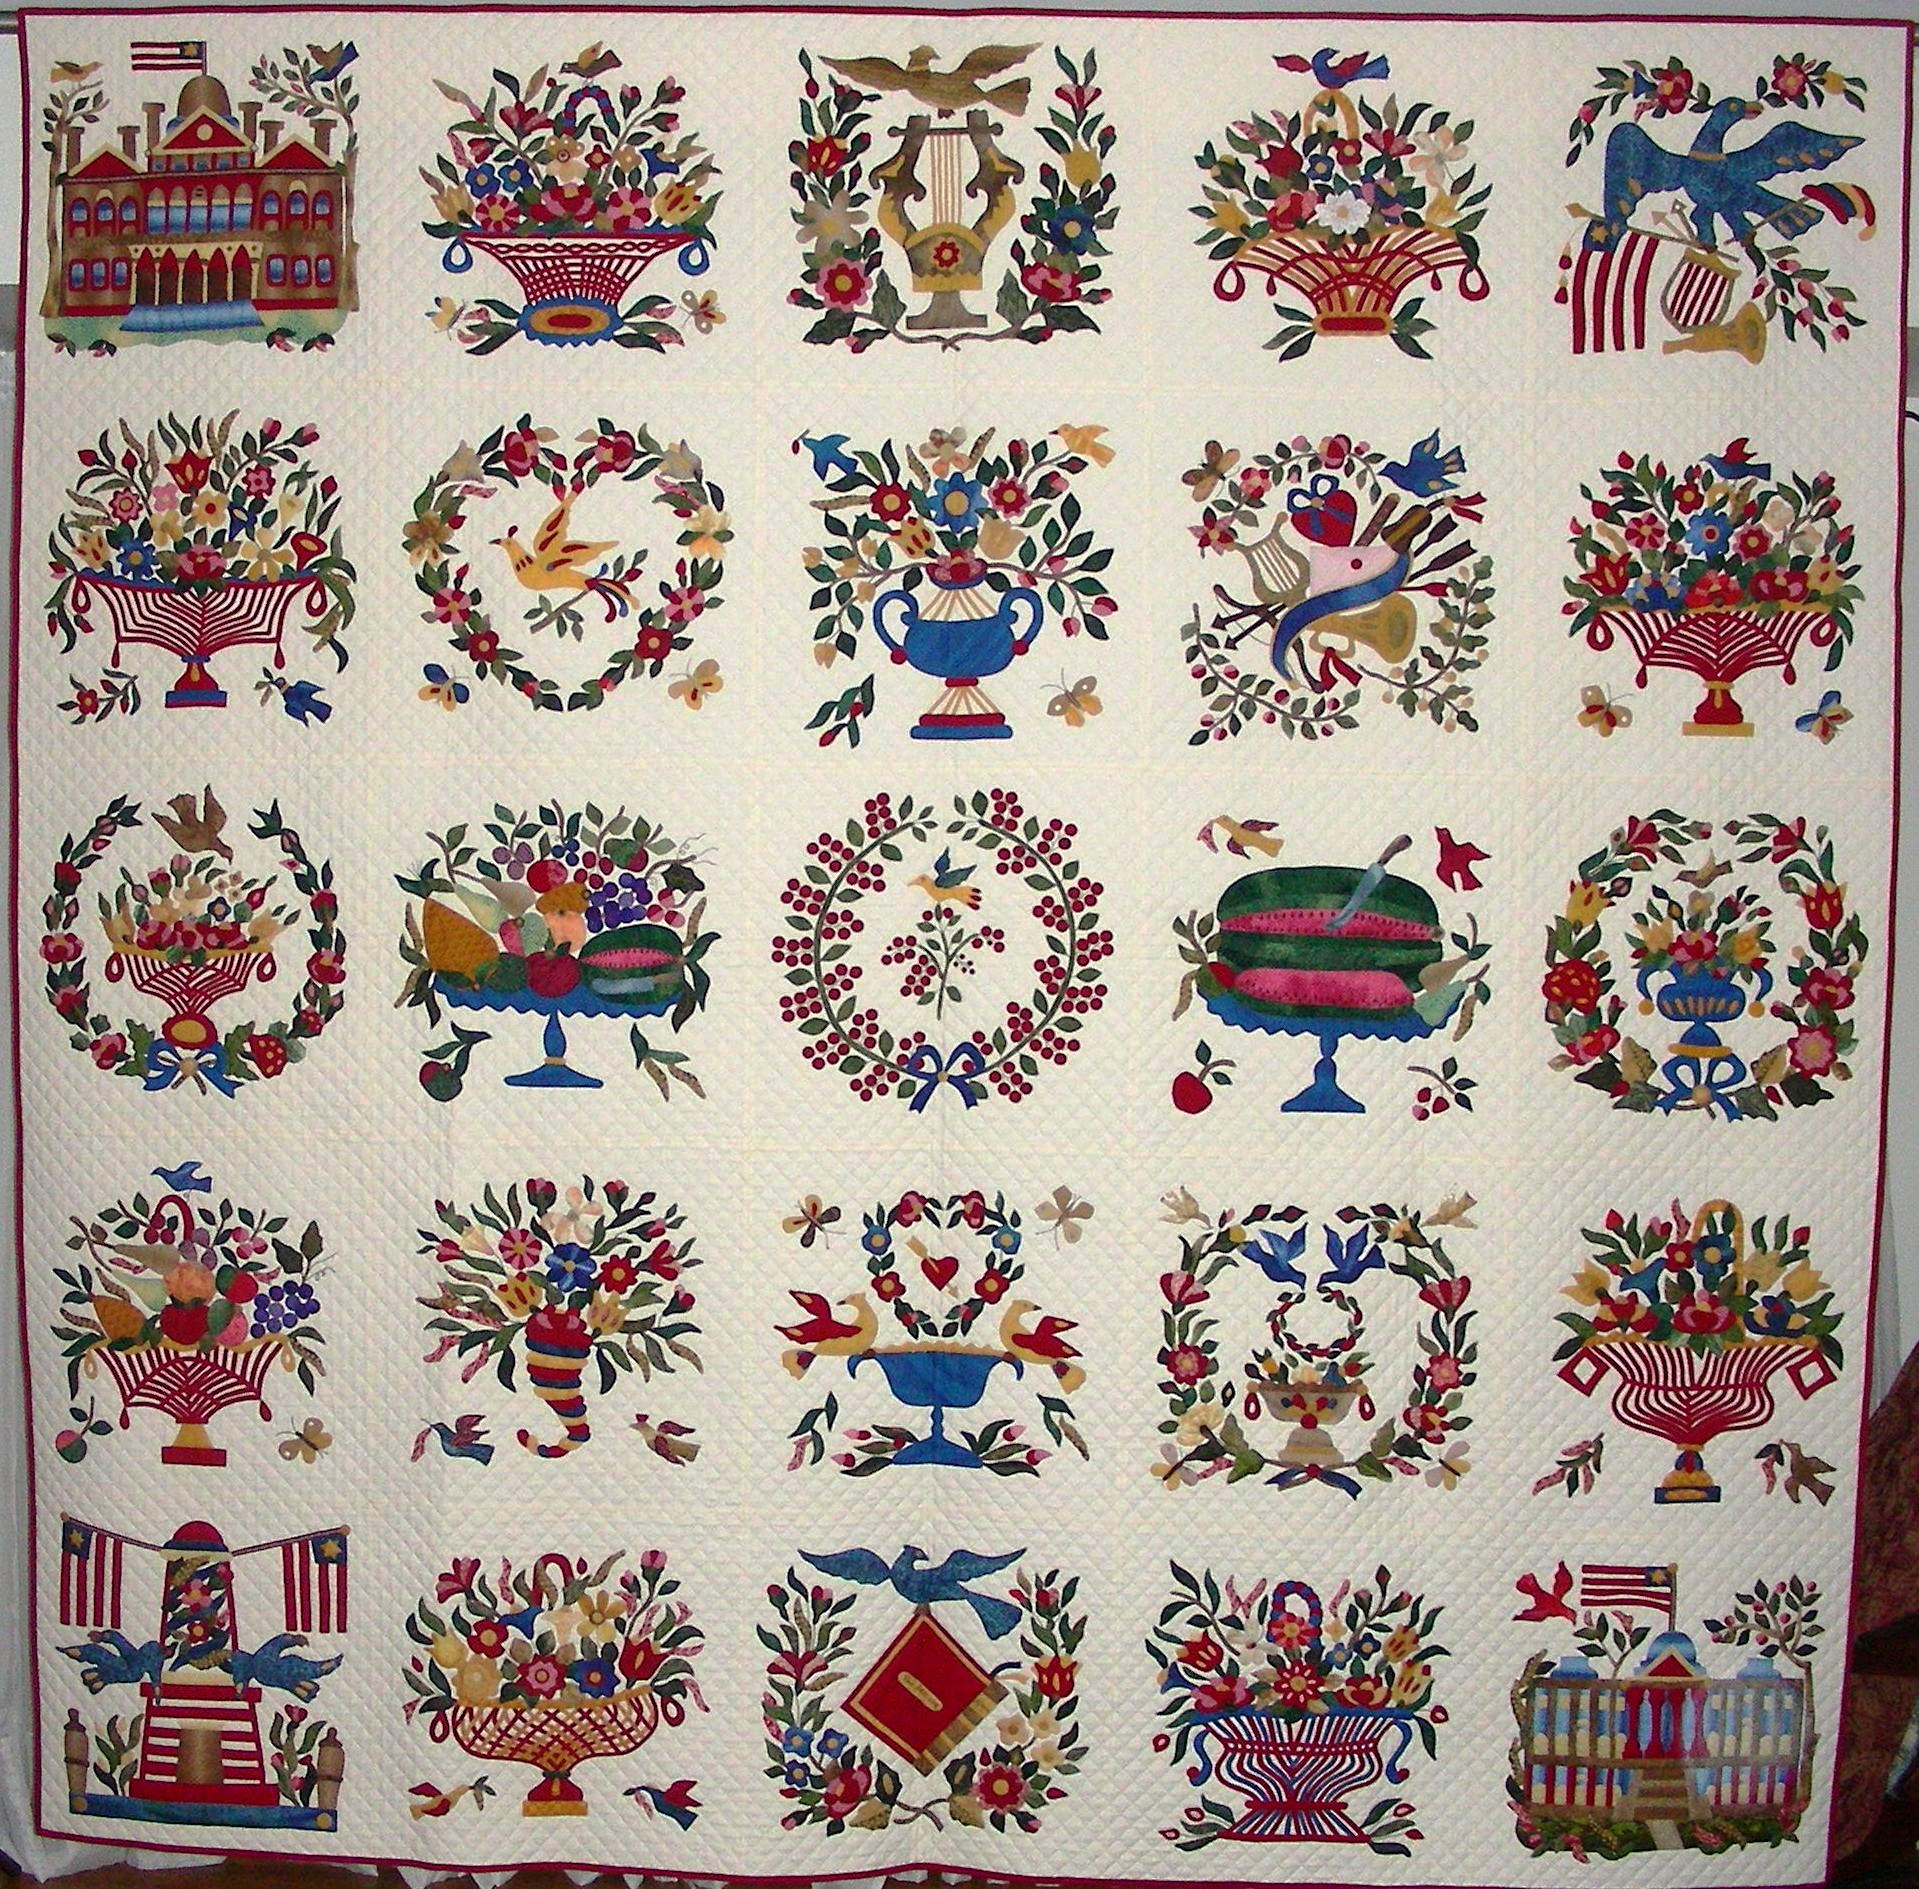 06Mary Simon DAR Quilt.jpg